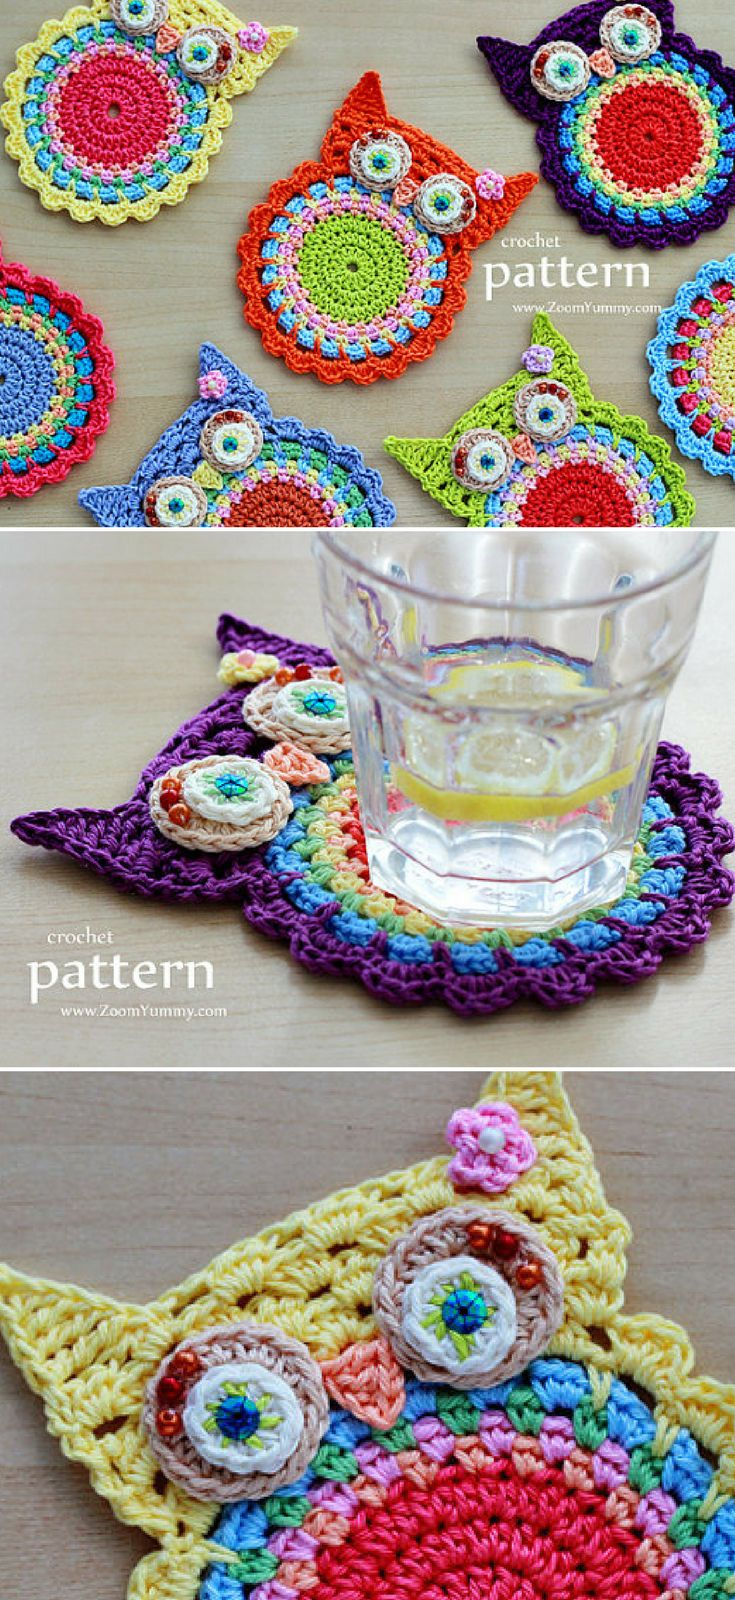 Crochet pattern for cute owl coasters! Adorable applique pattern for these cute owl coasters! Love it! #etsy #ad #pattern #pdf #download